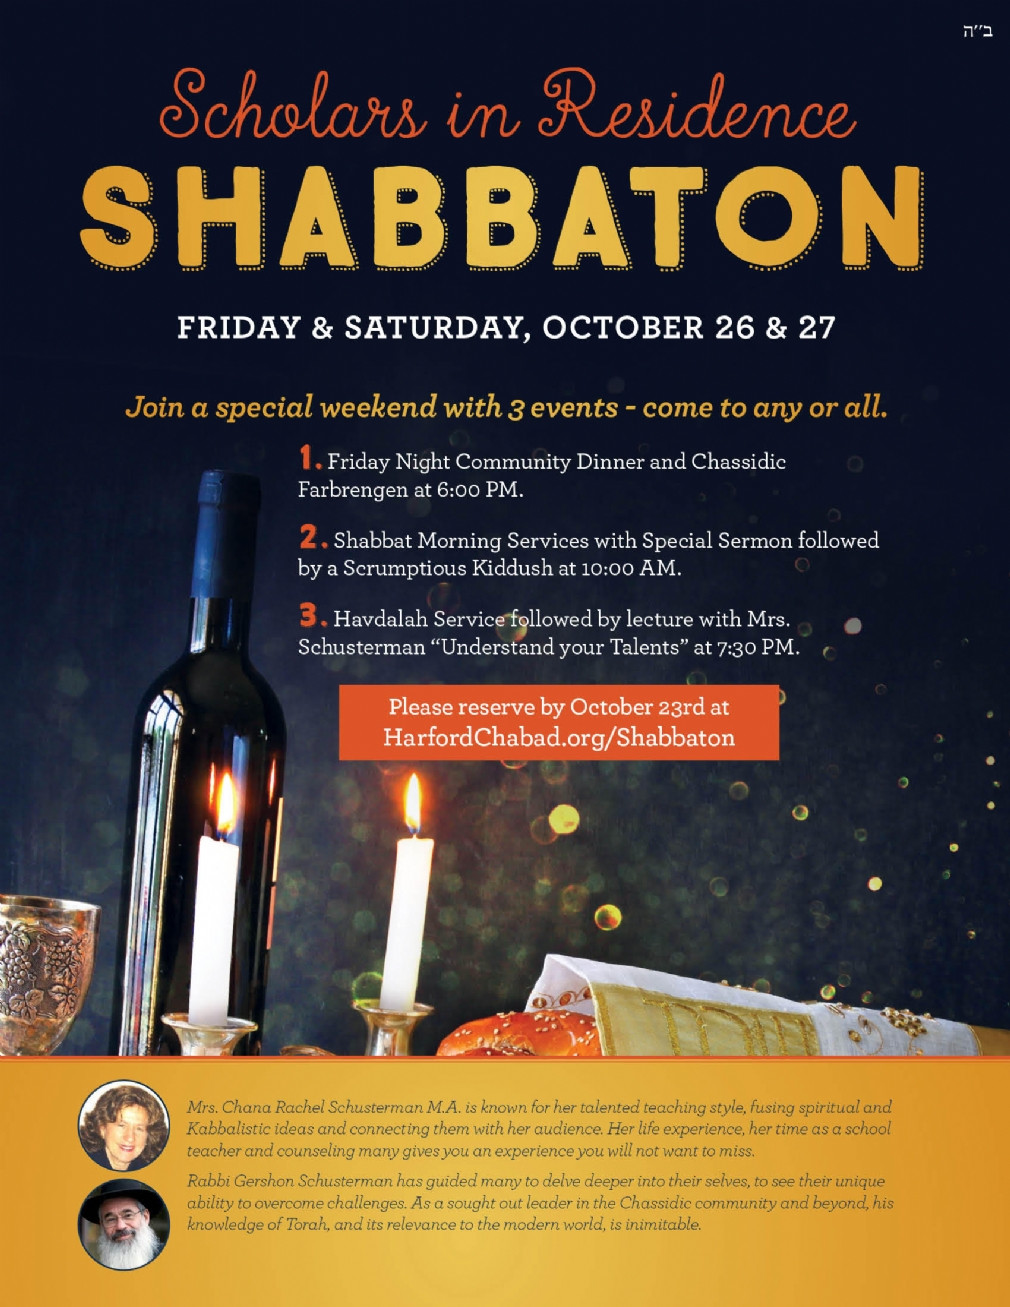 1. Friday Night Community Dinner and Chassidic Farbrengen on Friday, October 26th at 6:00 PM 2. Shabbat Morning Services with Special Sermon and Scrumptious Kiddush. Services begin 10:00 AM. 3. Havdalah Service followed by Lecture: